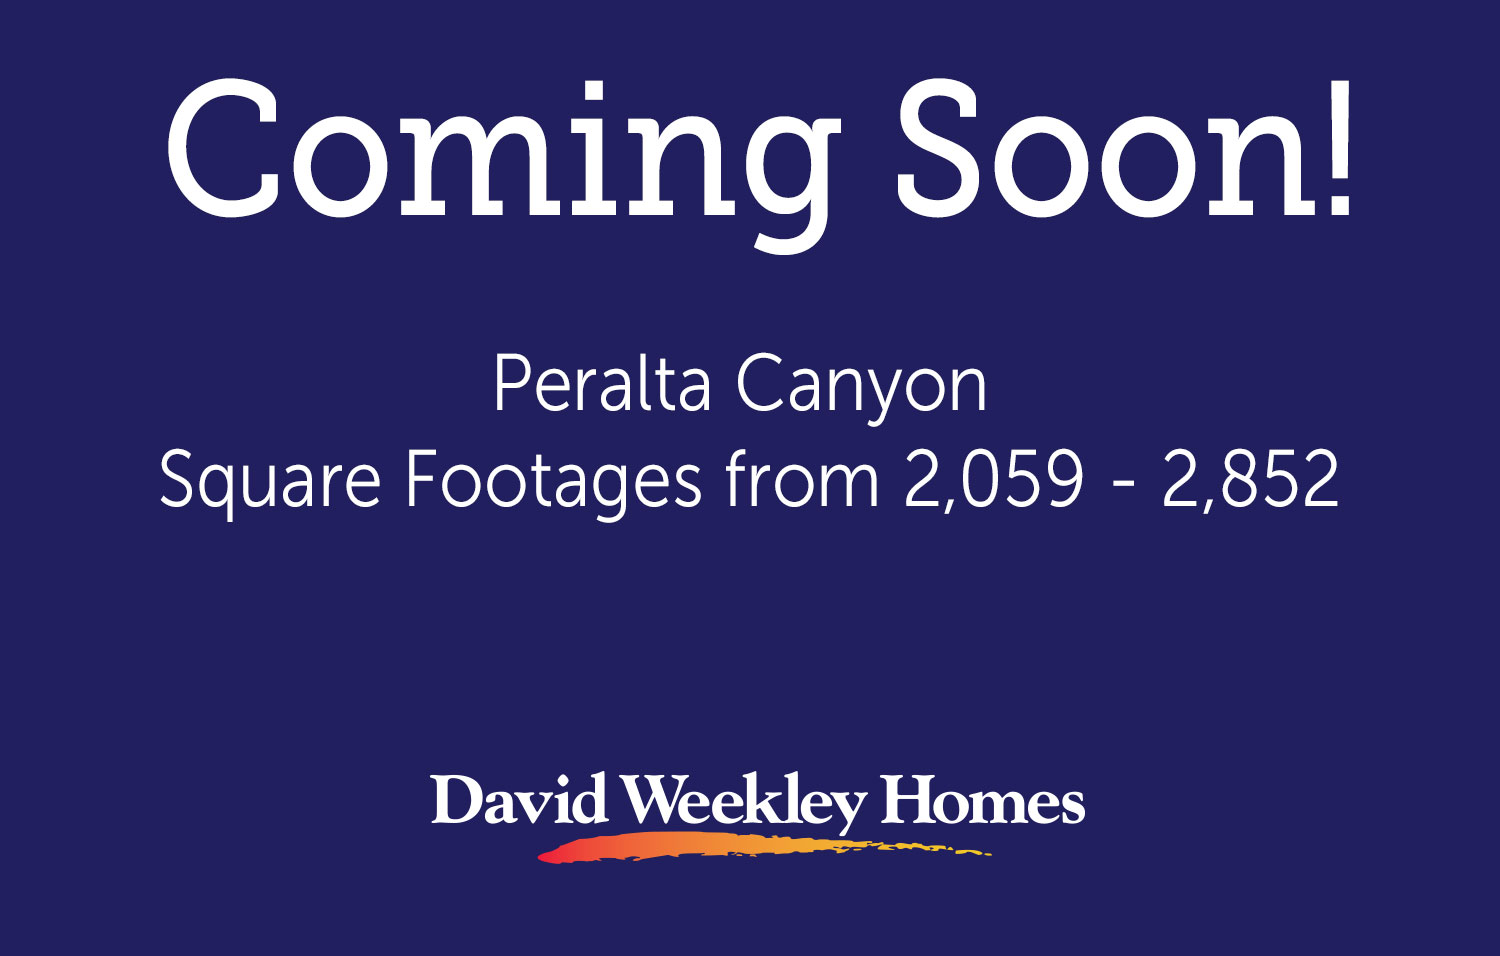 Peralta Canyon - Coming Soon